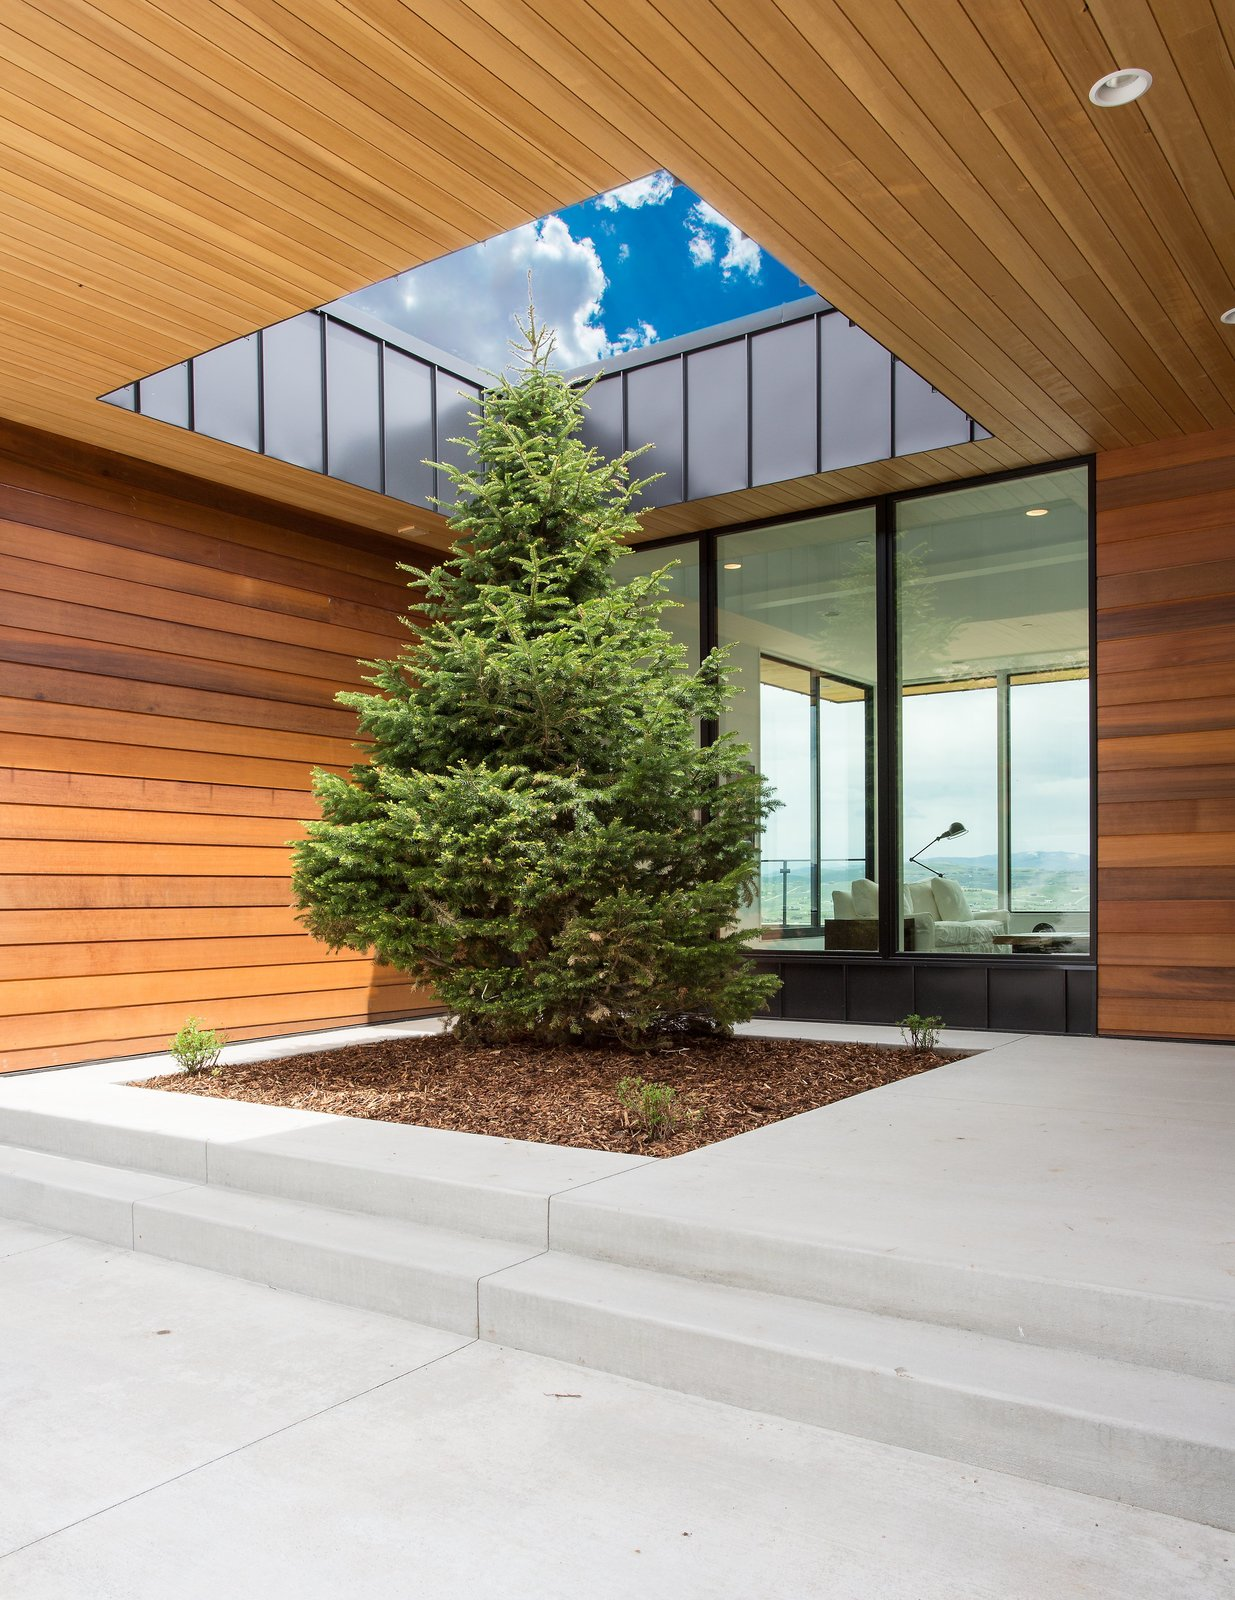 Exterior Keeping with the natural surroundings and color this tree has room to grow and enhance the landscape.  Purple Sage